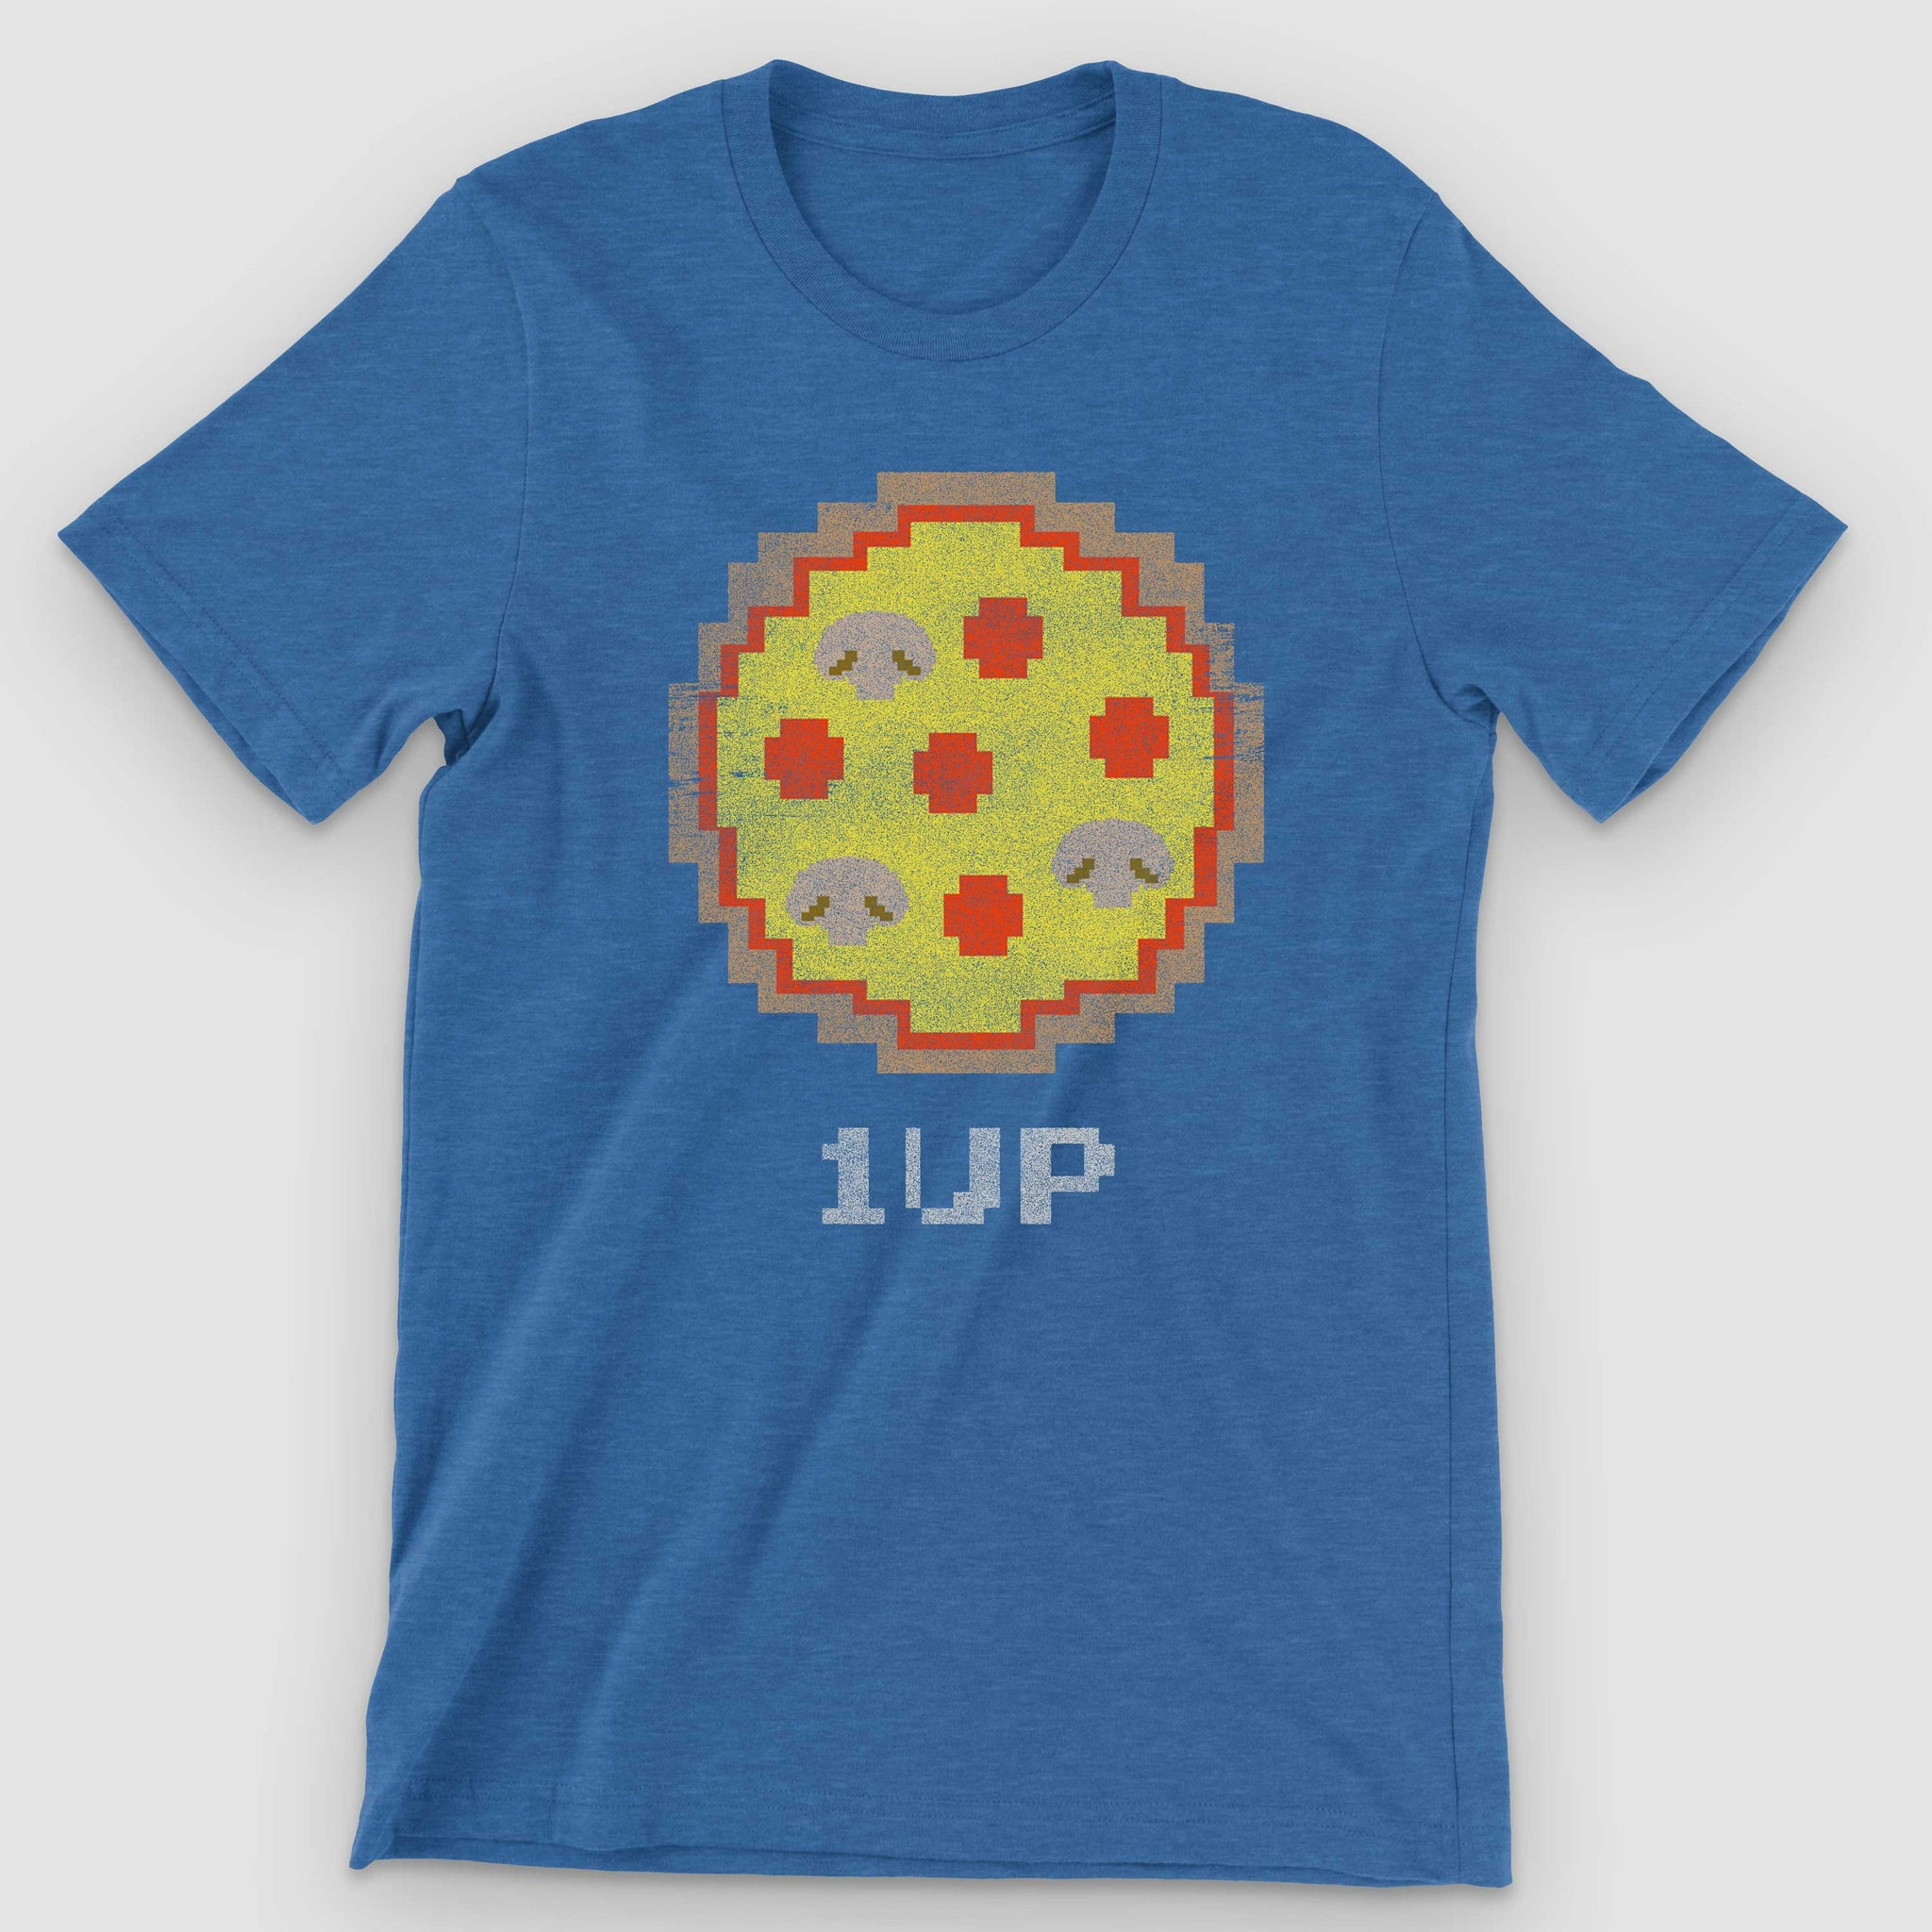 8-bit Arcade Pizza Graphic T-Shirt